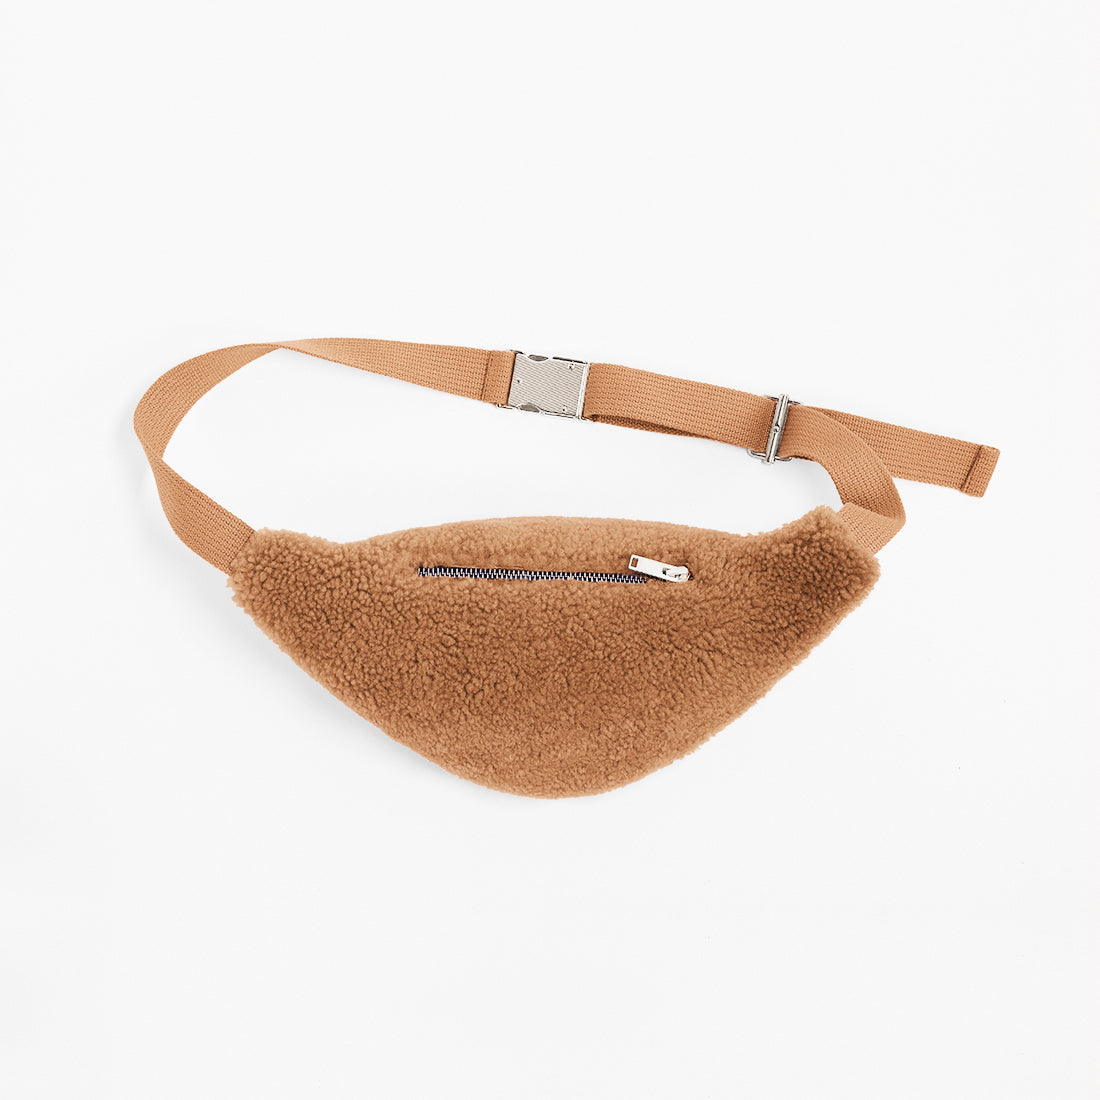 Sheepskin Camel Bum Bag